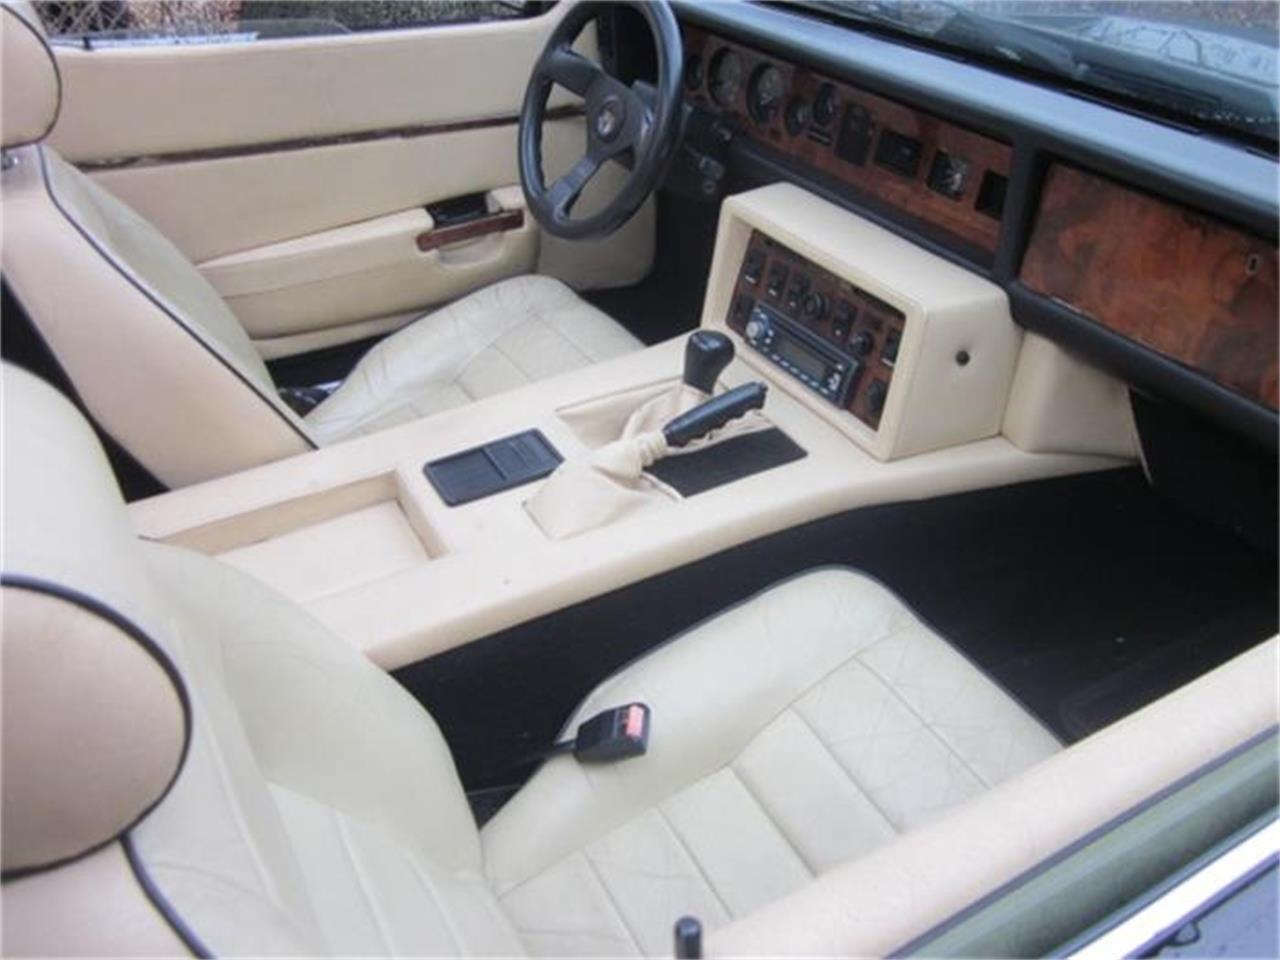 1986 TVR 280i for sale in Stratford, CT – photo 14